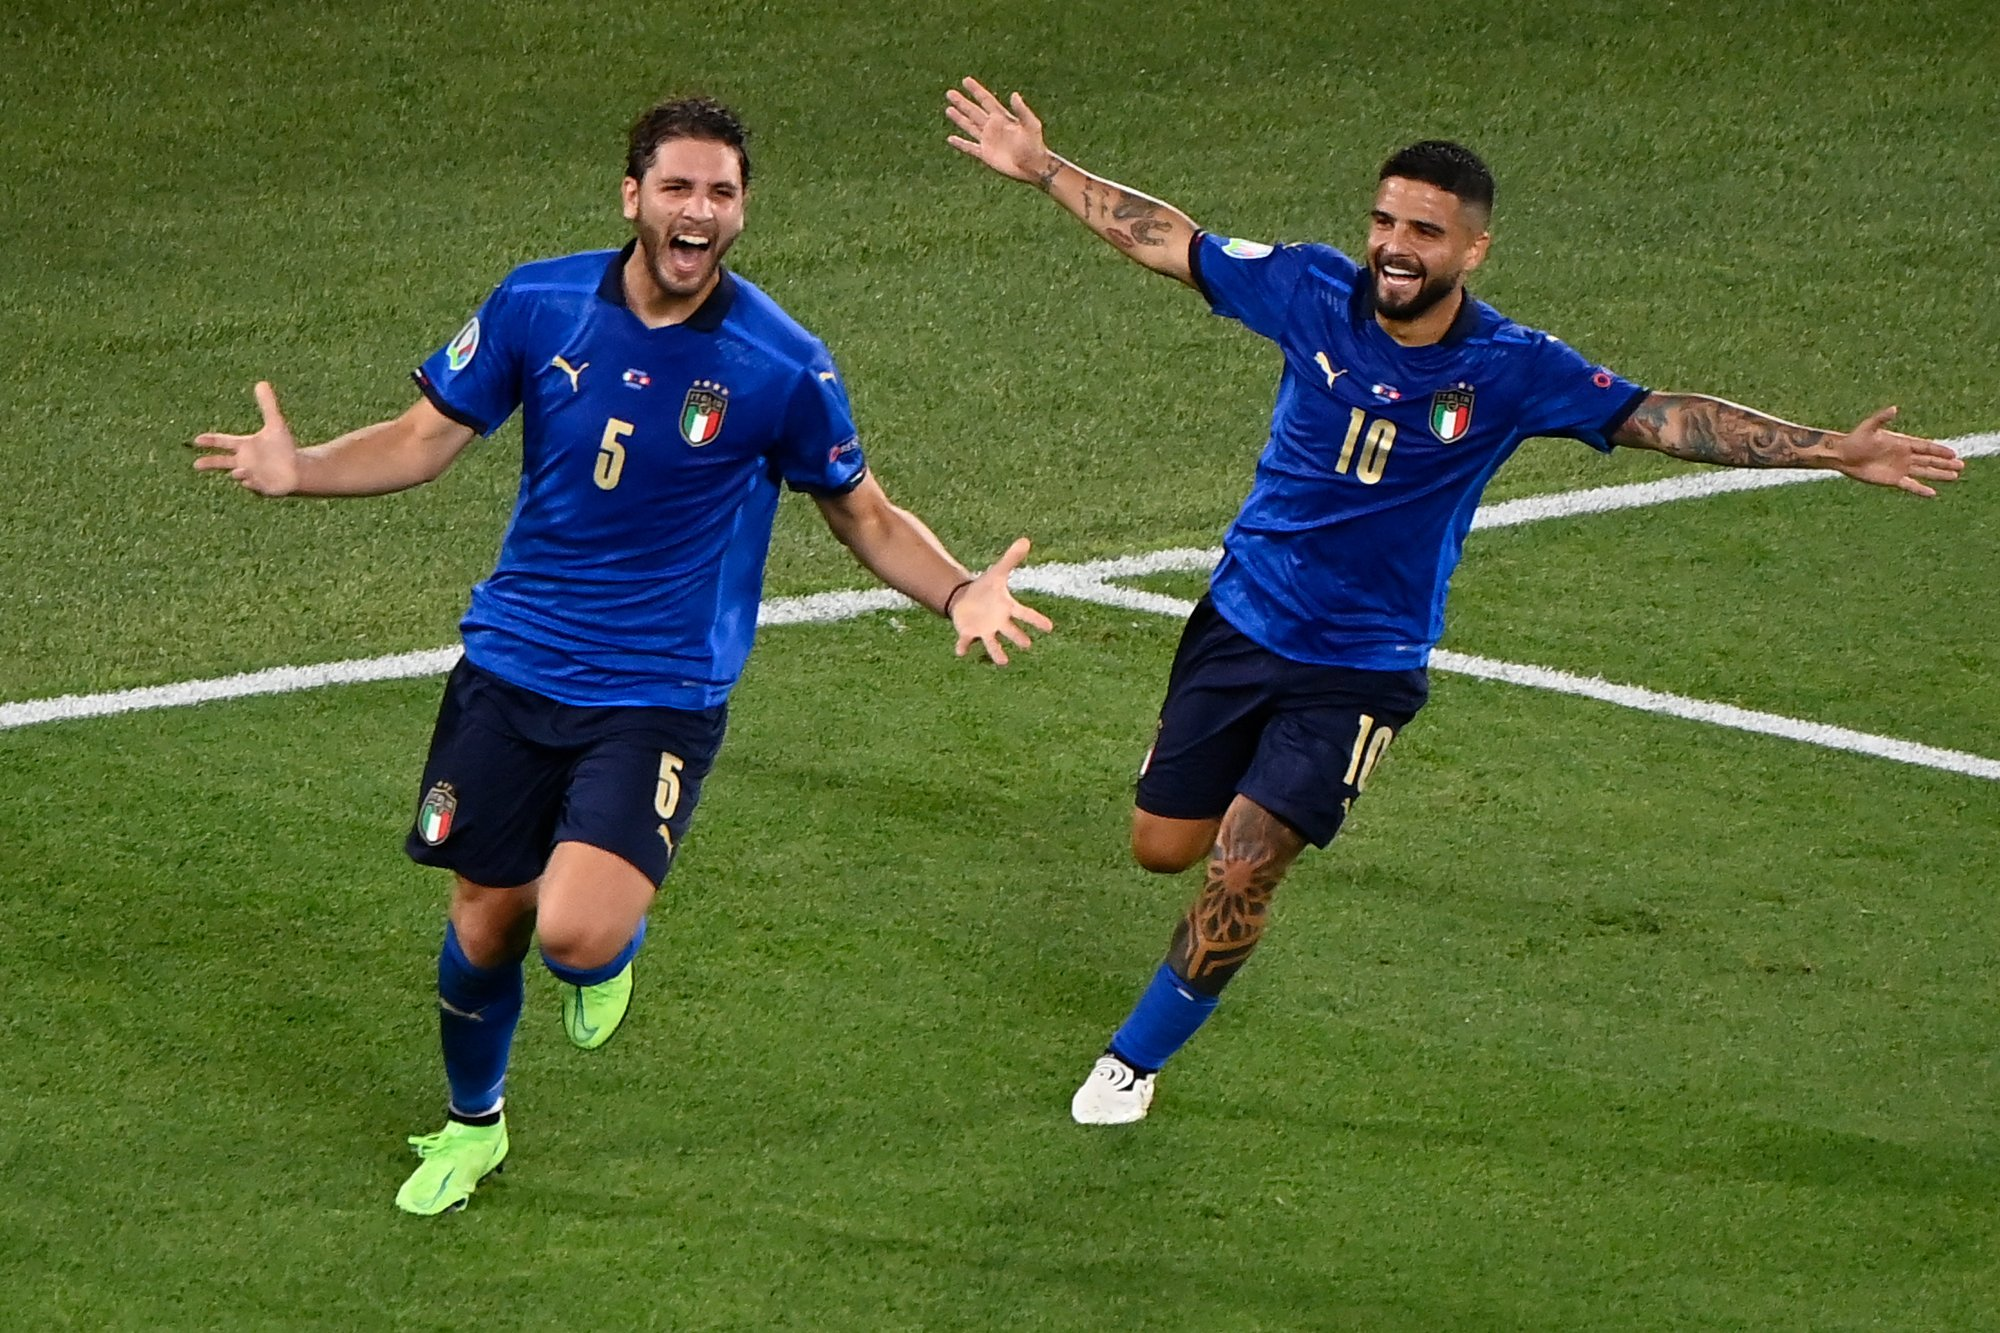 Italy is the first to advance to the European Championship